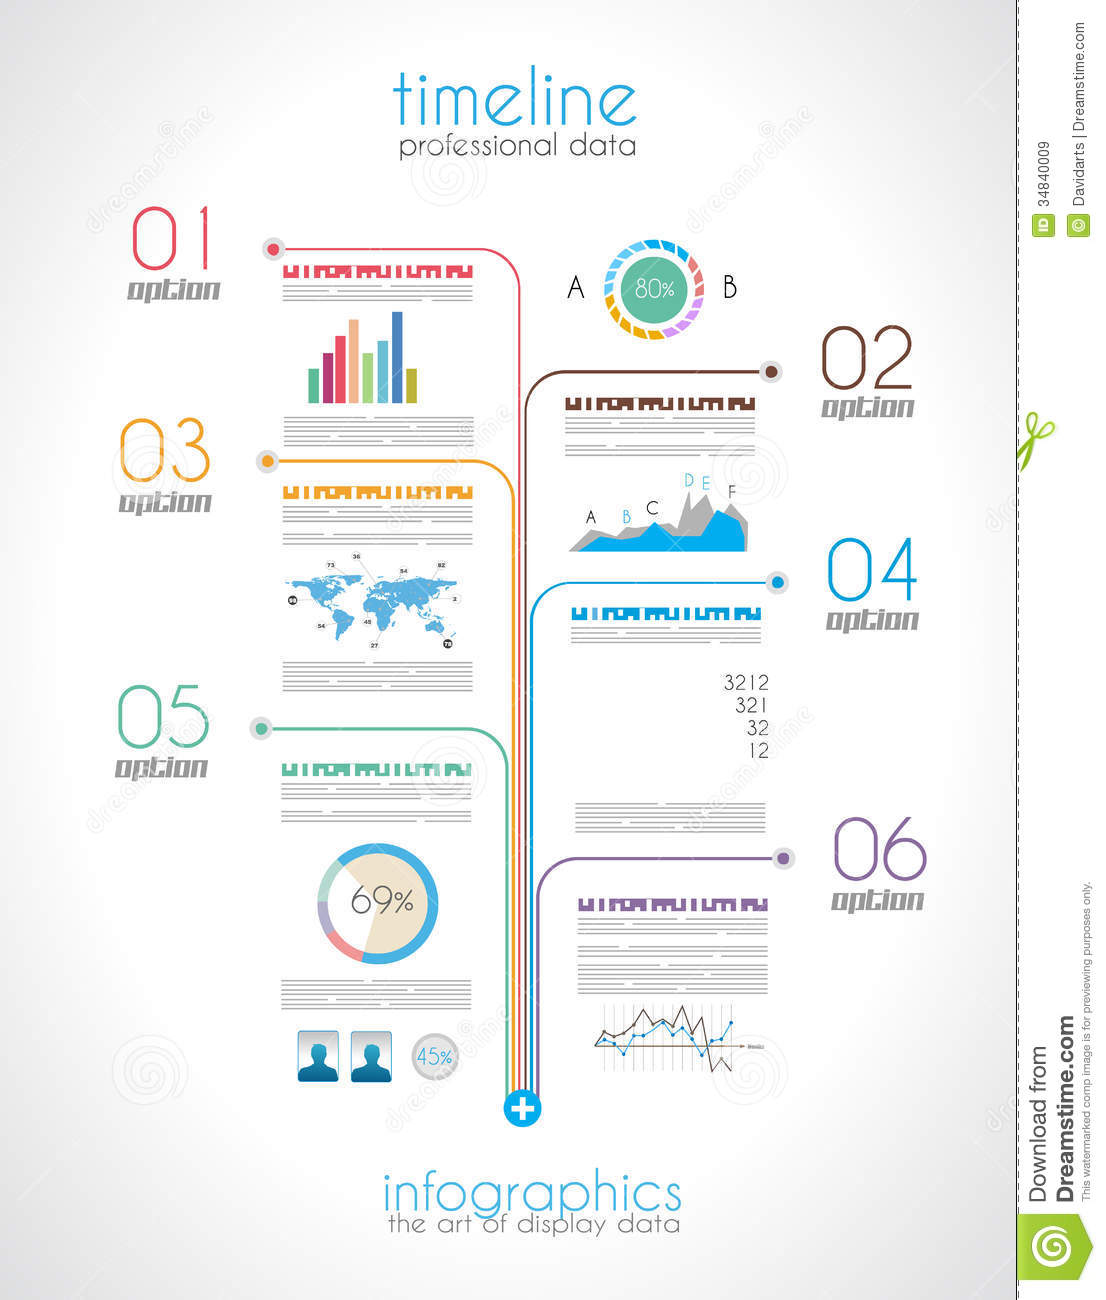 Timeline To Display Your Data With Infographic Stock Vector - Free timeline infographic template